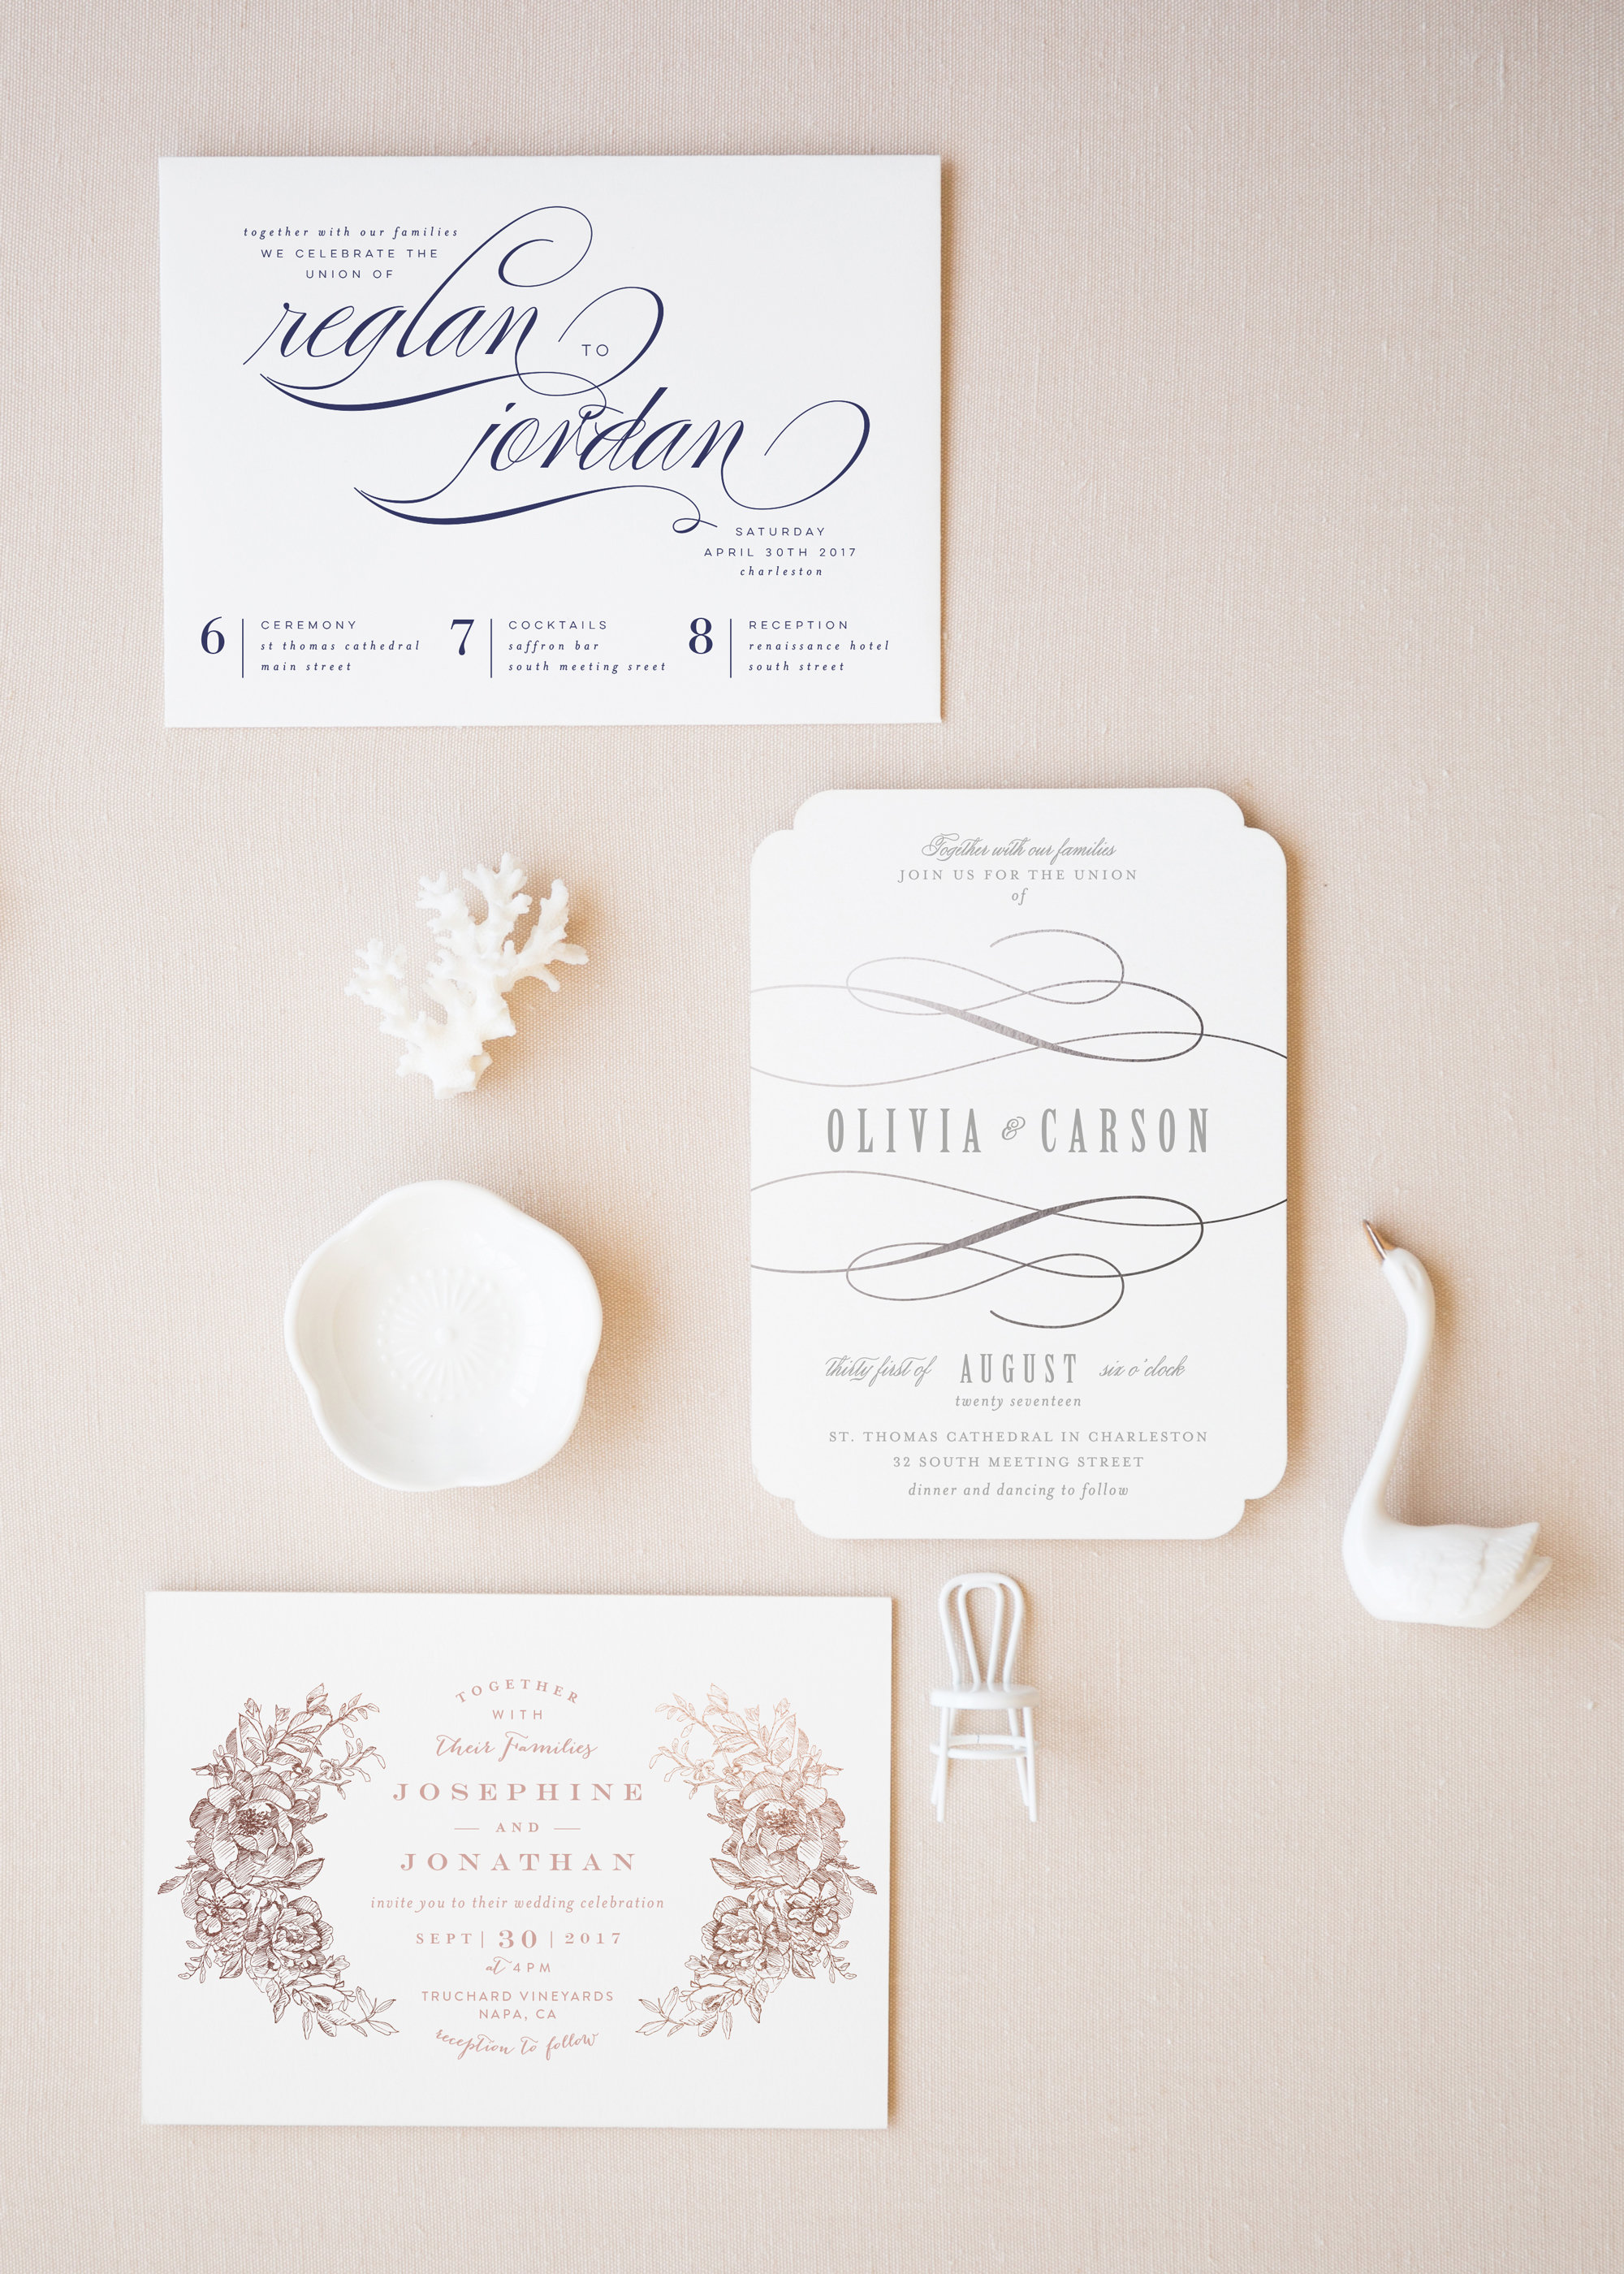 Wedding Invitation Trends 2017 — New Wedding Stationery Ideas for ...